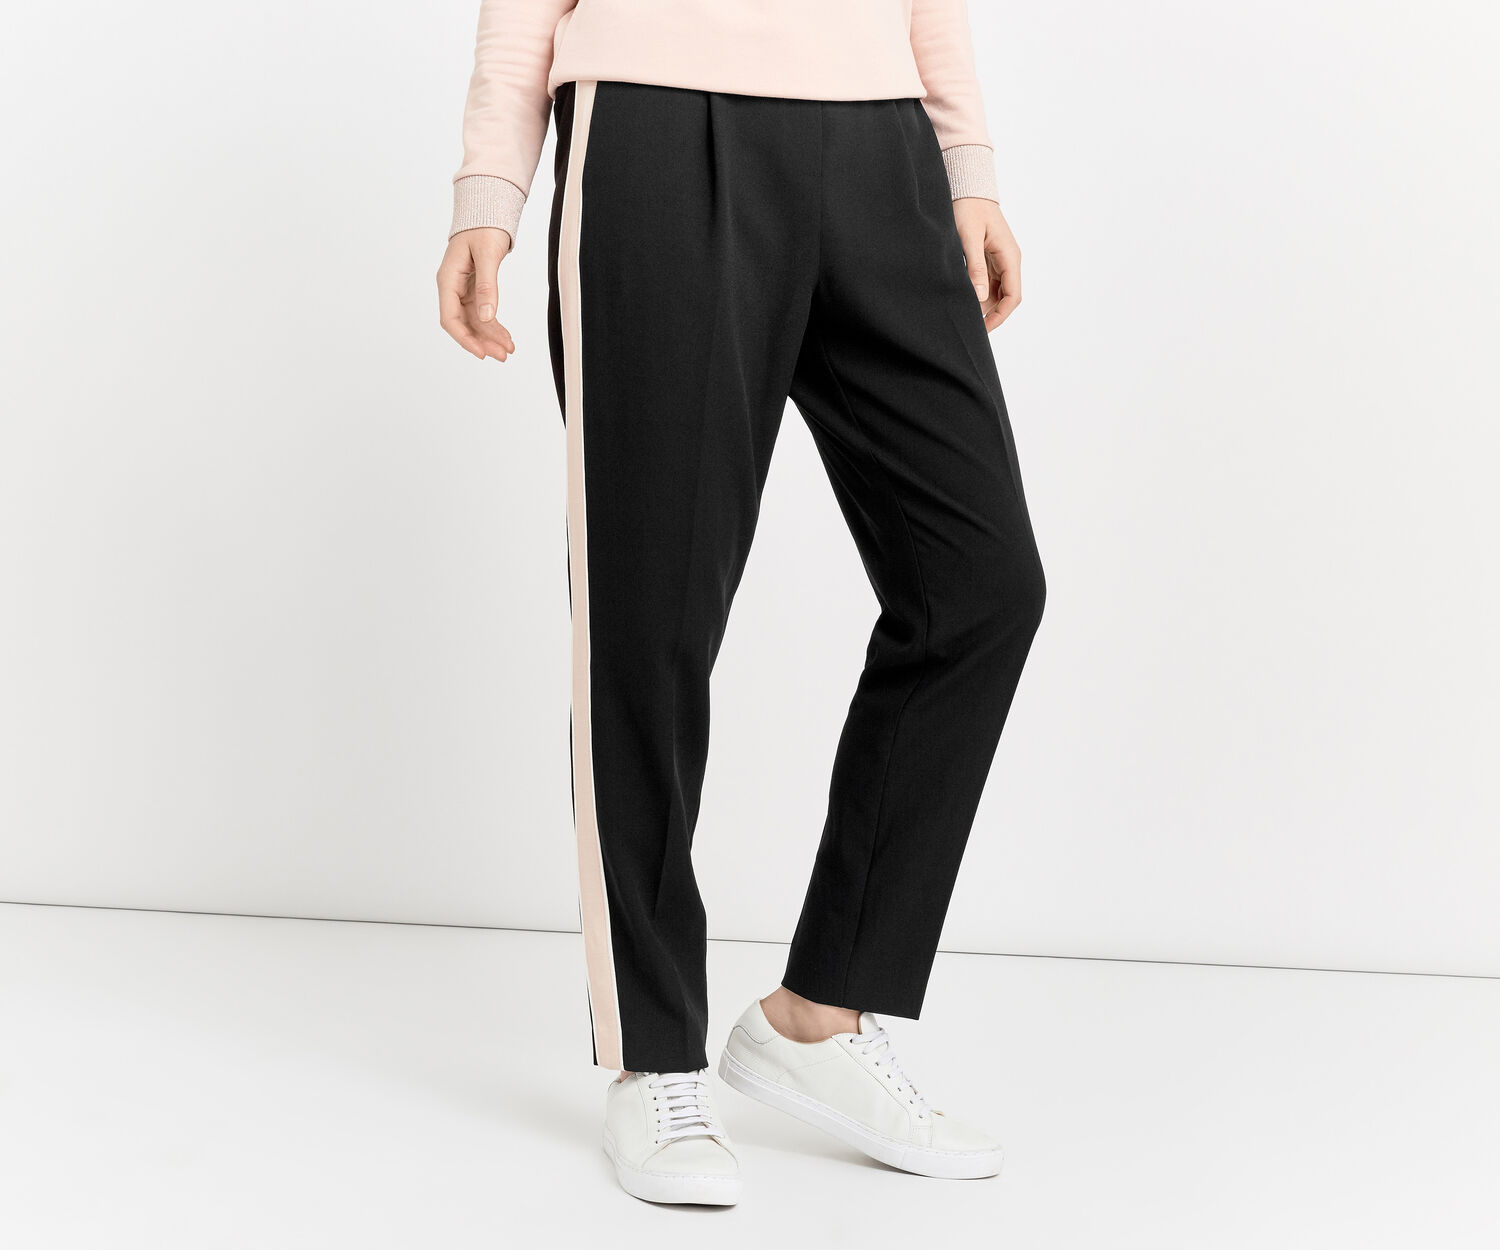 Oasis, SOFT SPORTY TROUSERS Black and White 1